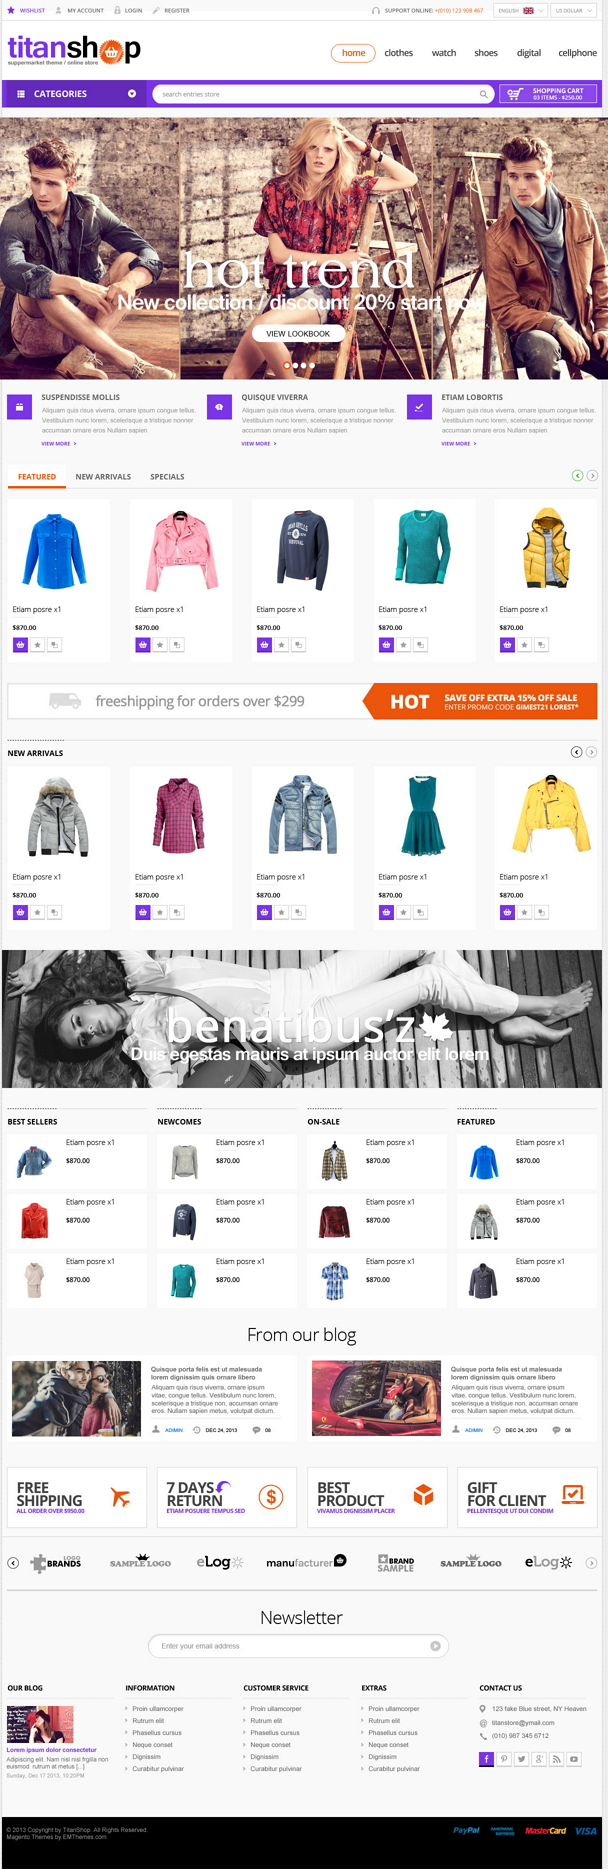 Especially designed to serve for online supermarket businesses, Titanshop theme has a neat and c ...